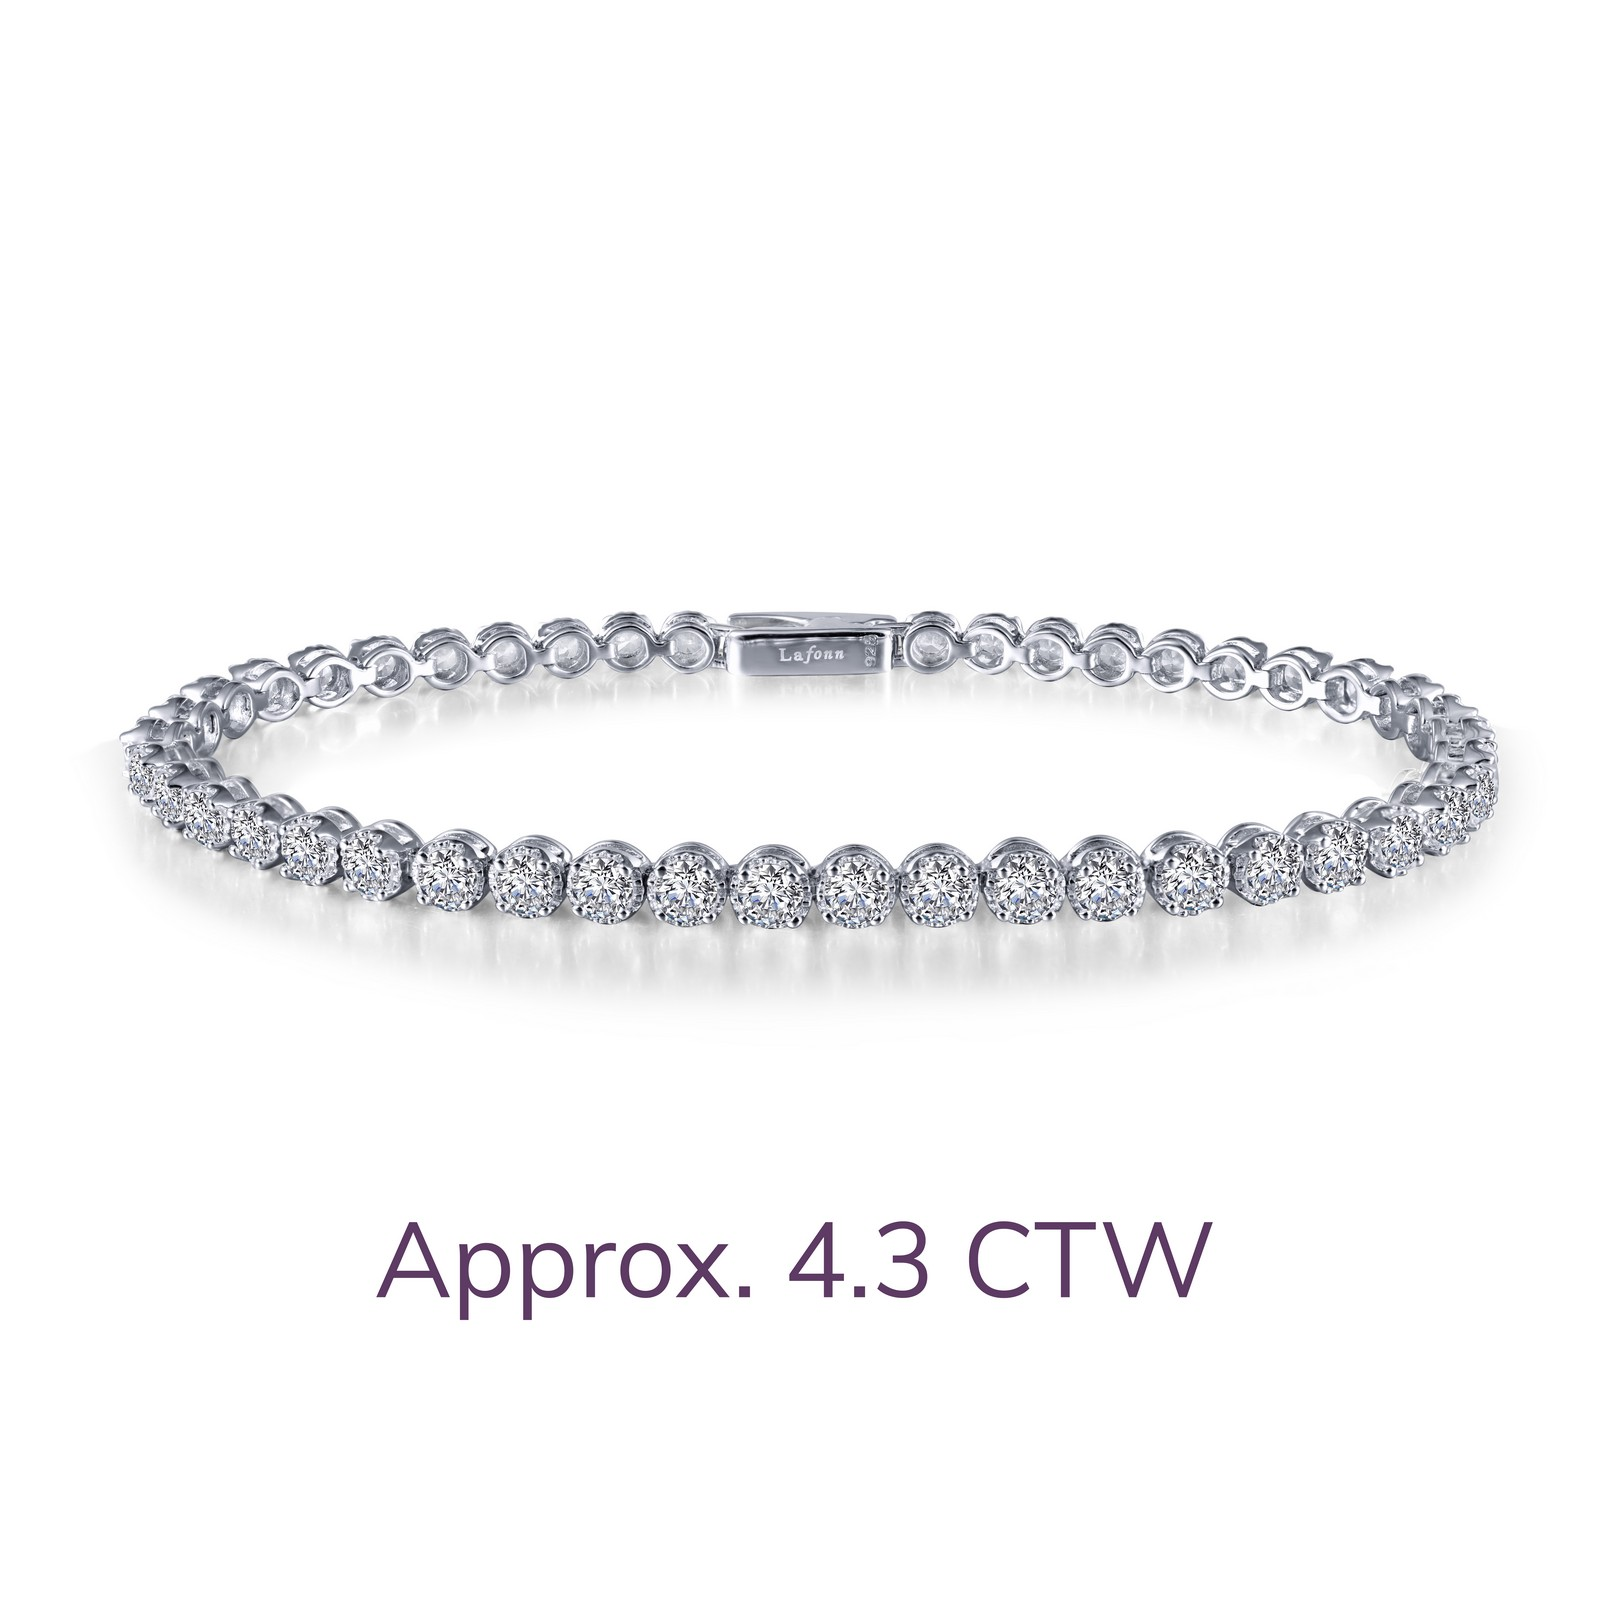 B0034CLP65 - Timeless classics for everyday wear. This sparkly tennis bracelet is bezel-set with Lafonn's signature Lassaire simulated diamonds in sterling silver bonded with platinum. MSRP: $230 CTTW: 4.29 STONE COUNT: 39